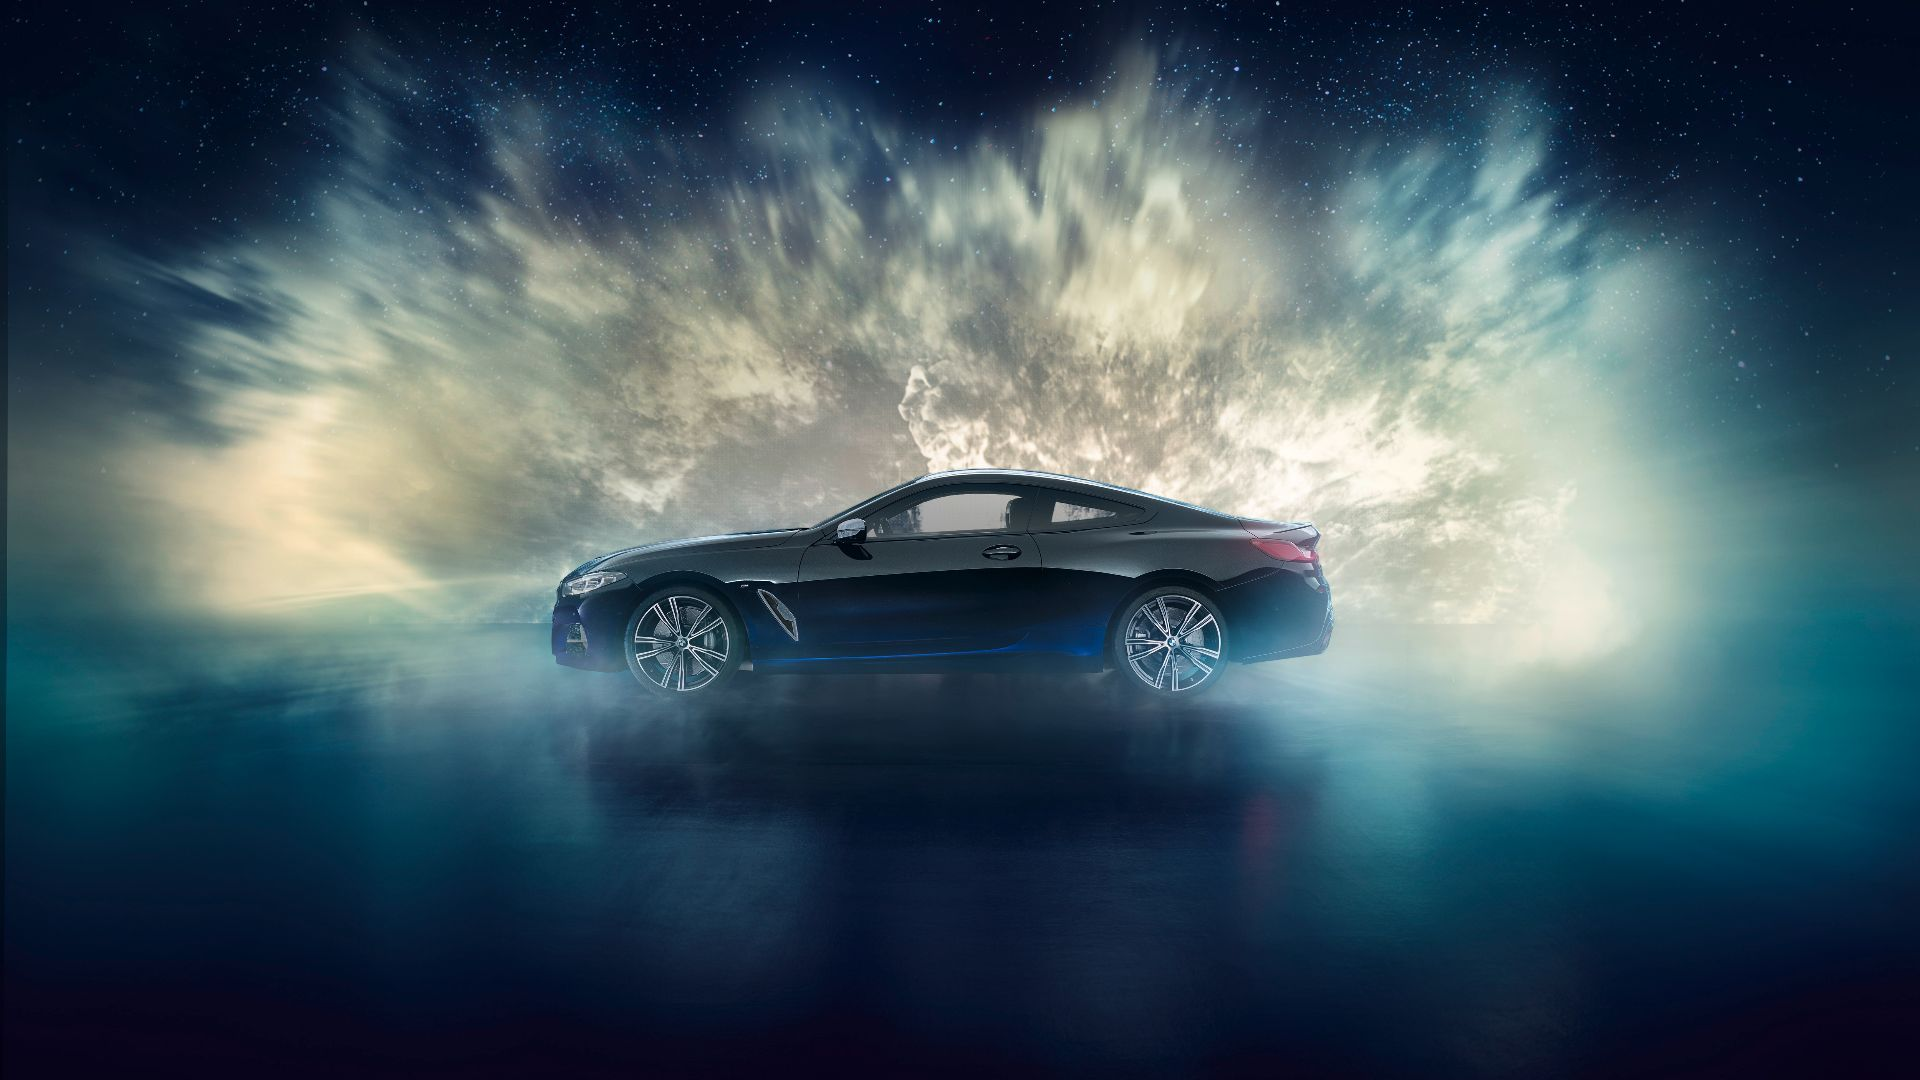 The Bmw M850i Night Sky Is Trimmed With Star Dust